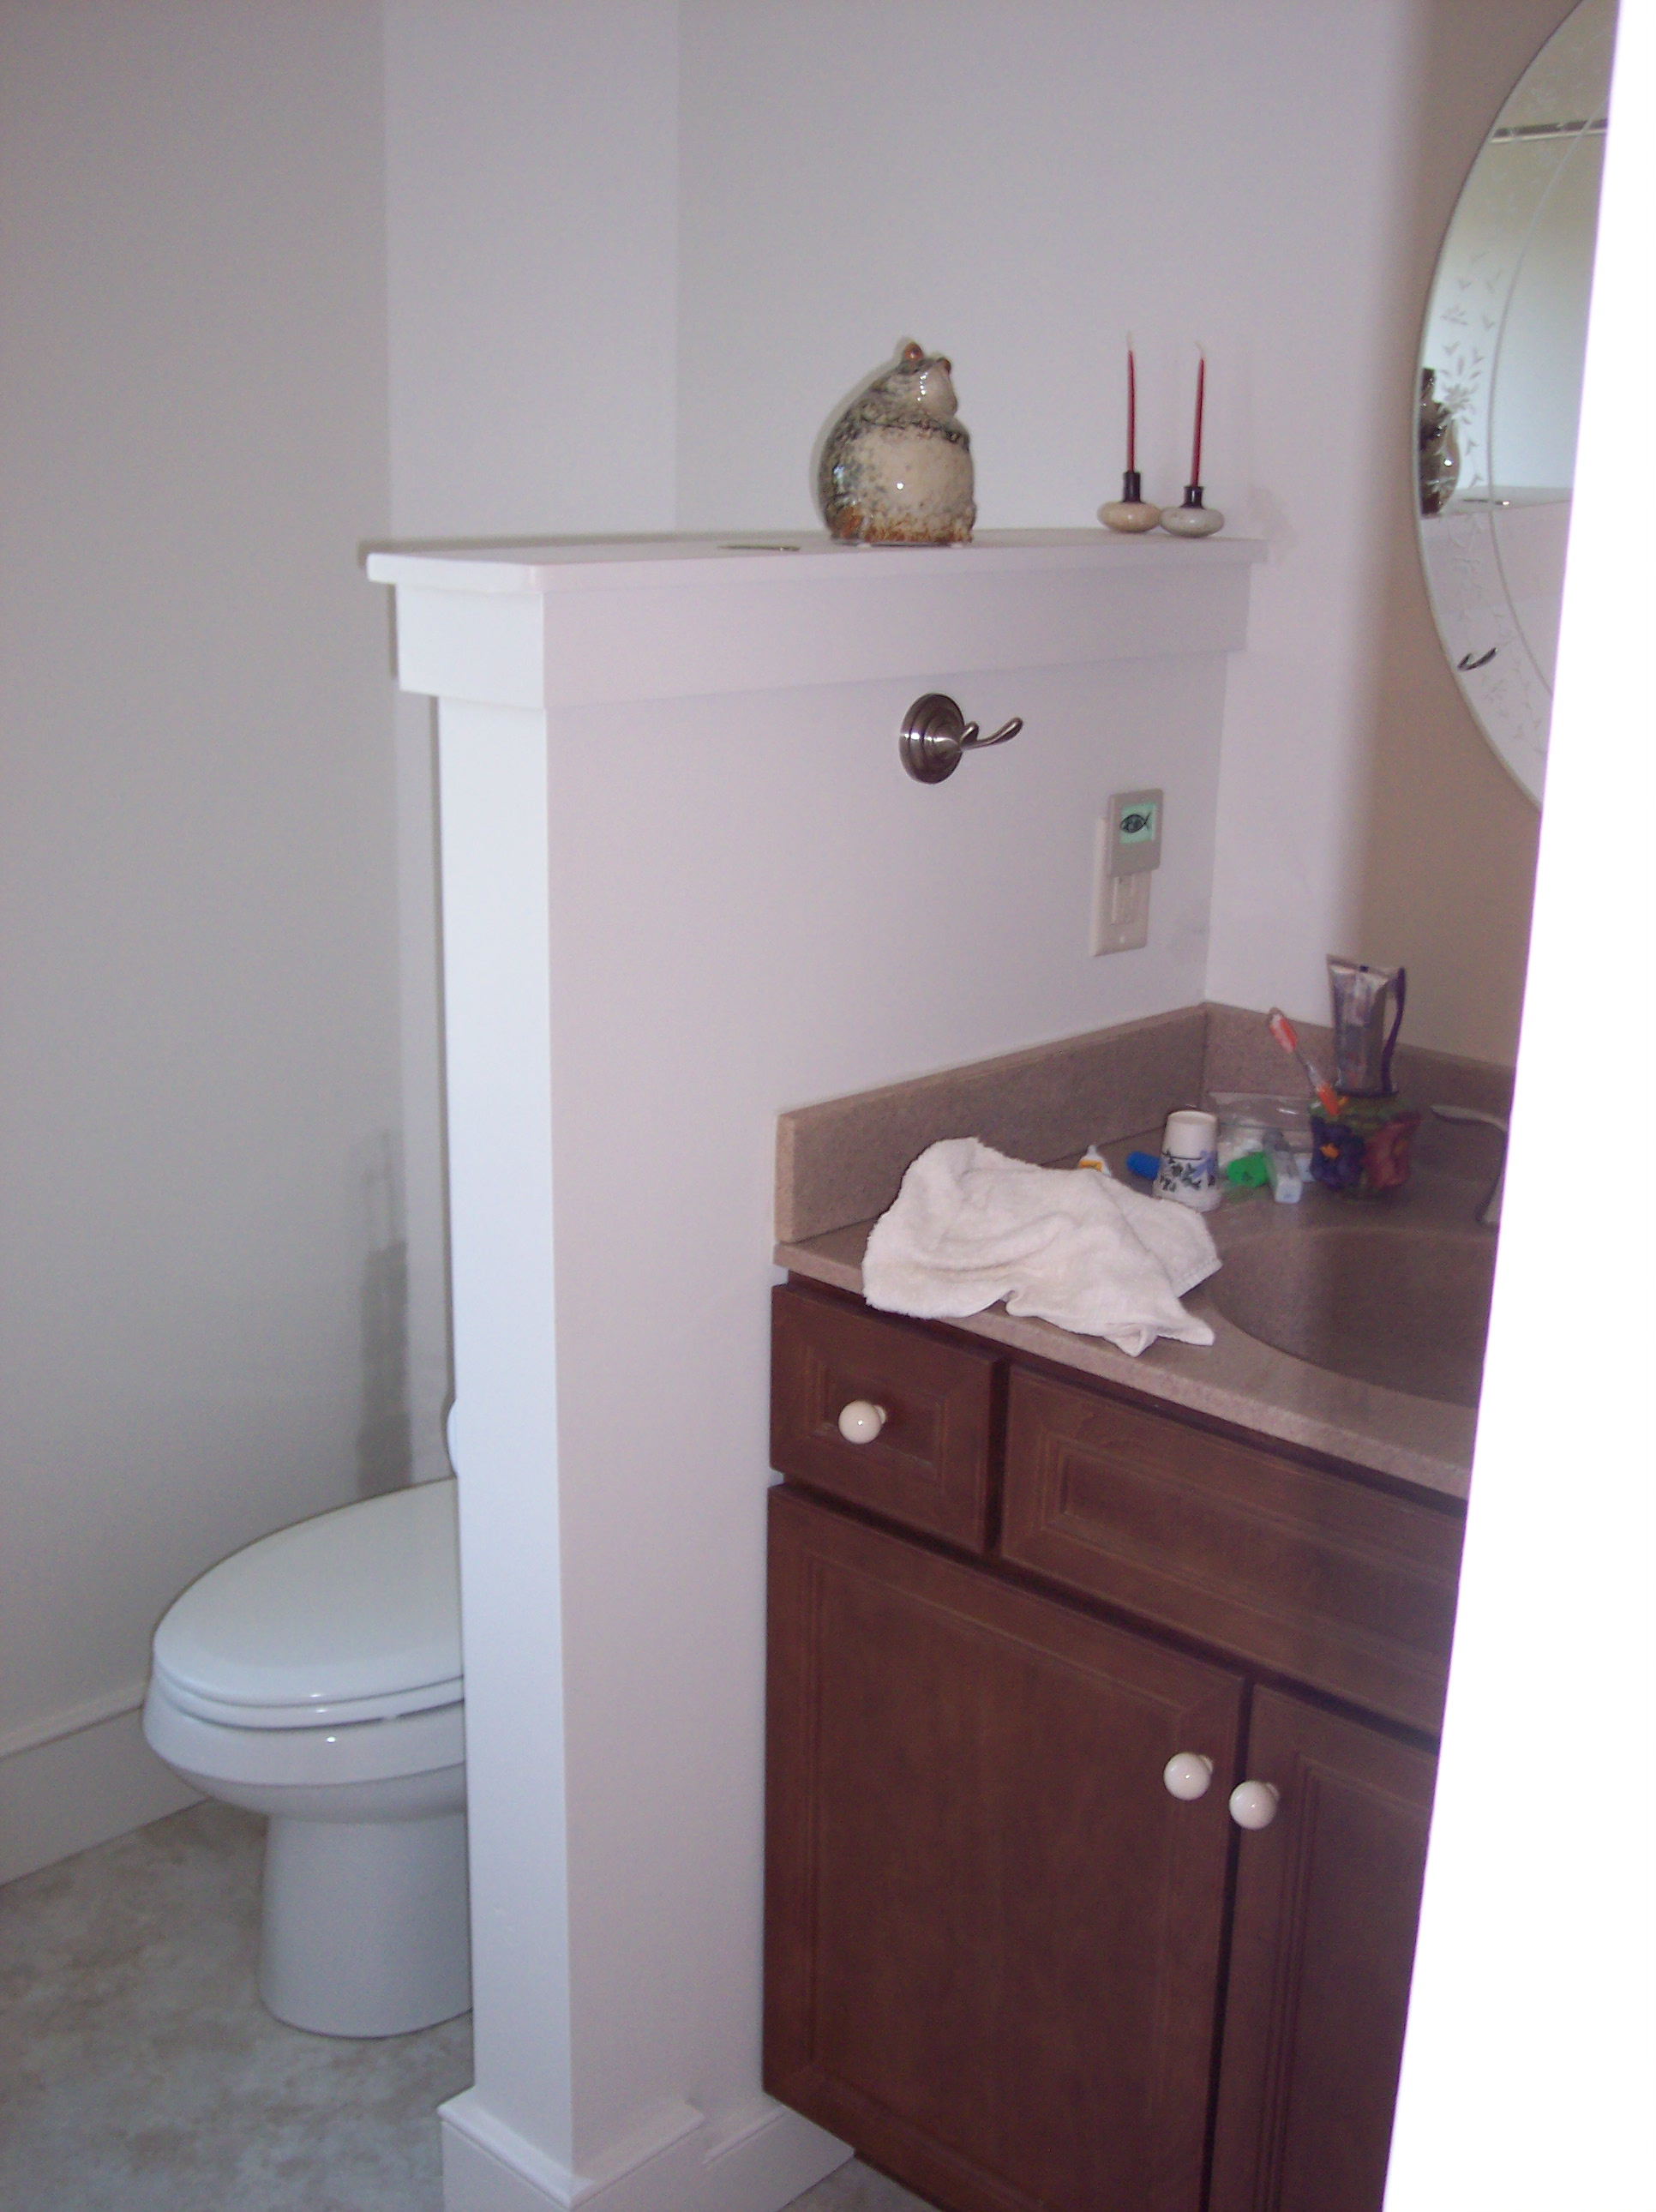 Remodeling ideas for small bathrooms lancaster pa for Bathroom remodel ideas for small bathrooms